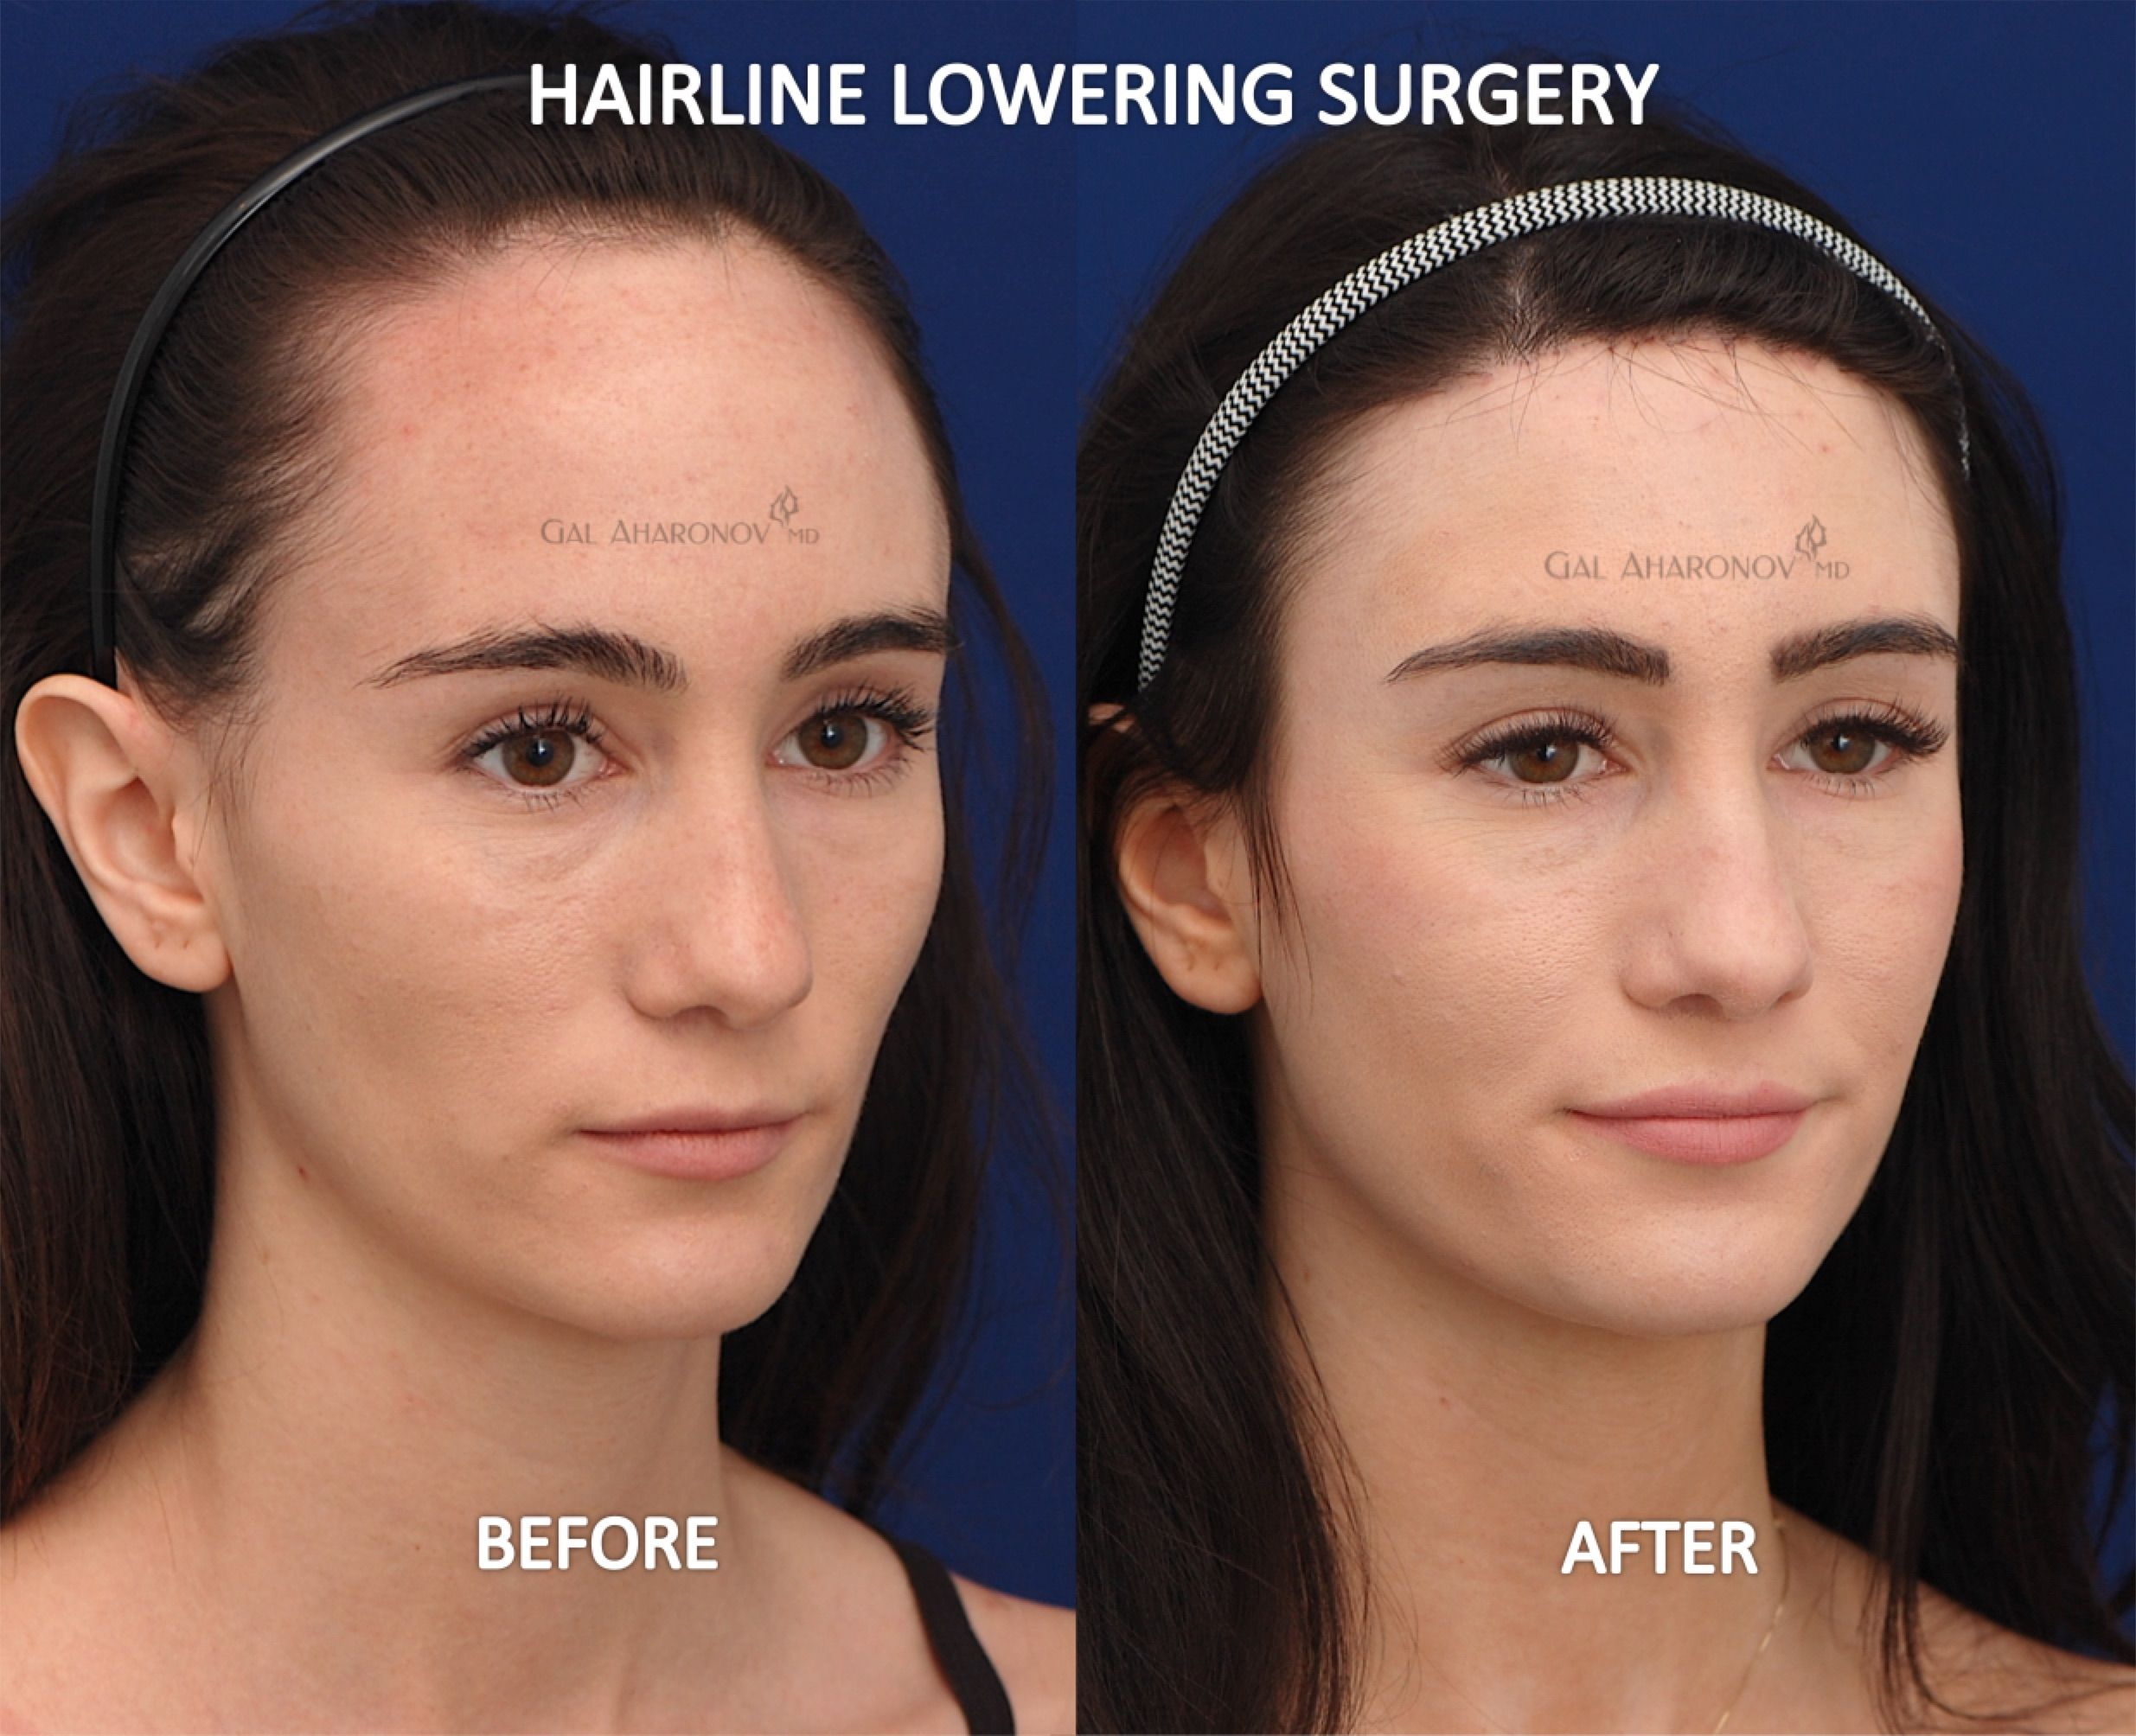 Forehead Reduction Surgery Hairline Lowering Surgery Before And After Photos Forehead Reduction Forehead Reduction Surgery Haircut For Big Forehead